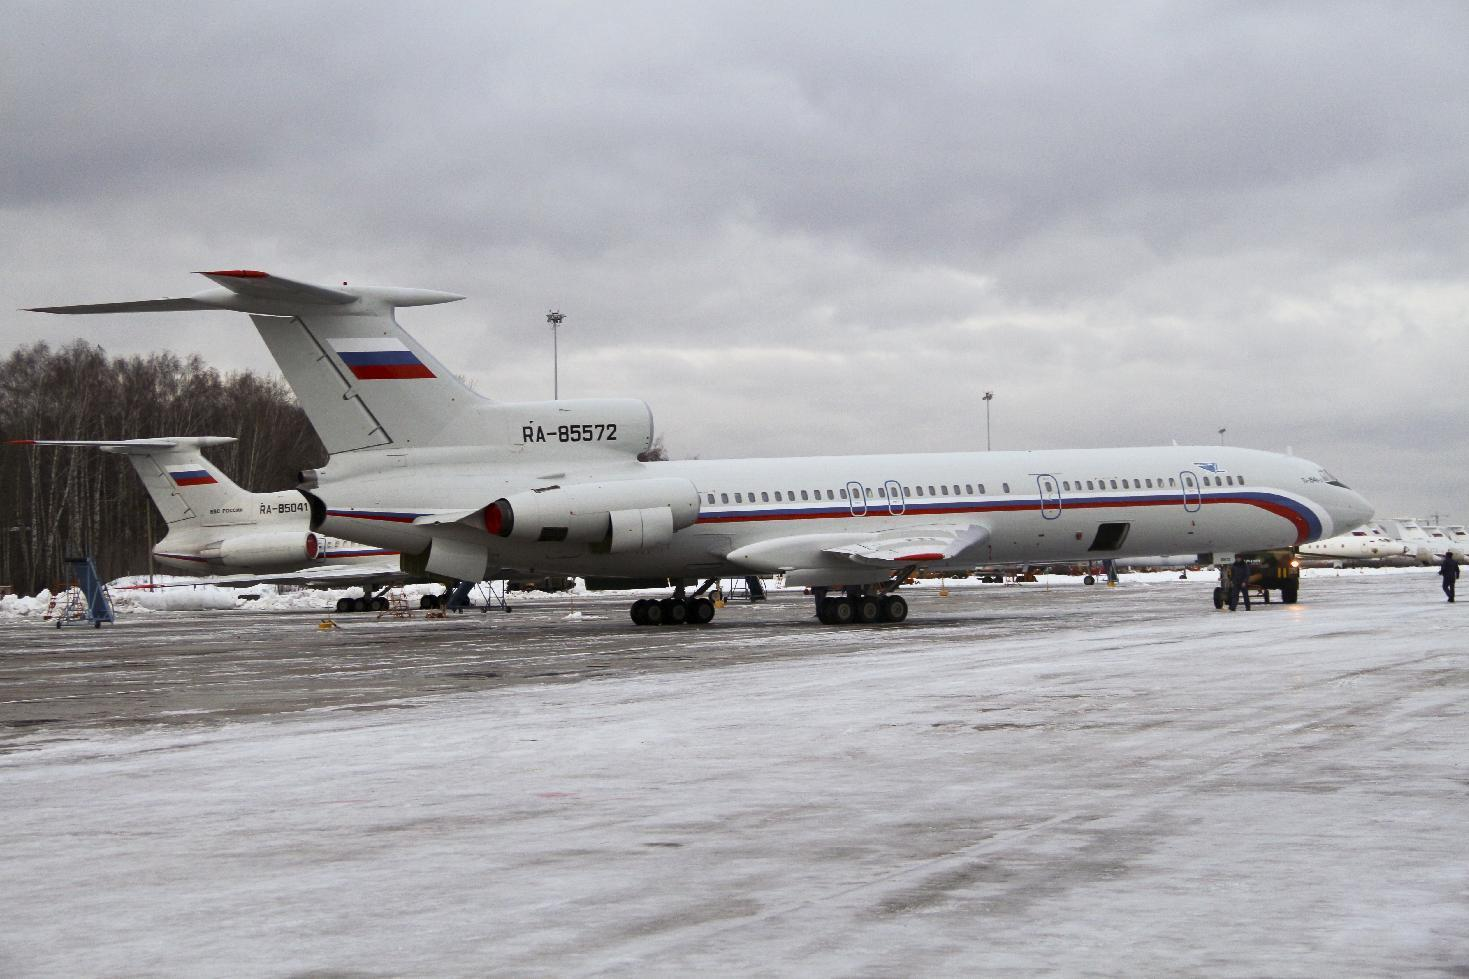 The full list of Tu-154 passengers who fell into the Black Sea has been published on 12/25/2016 69